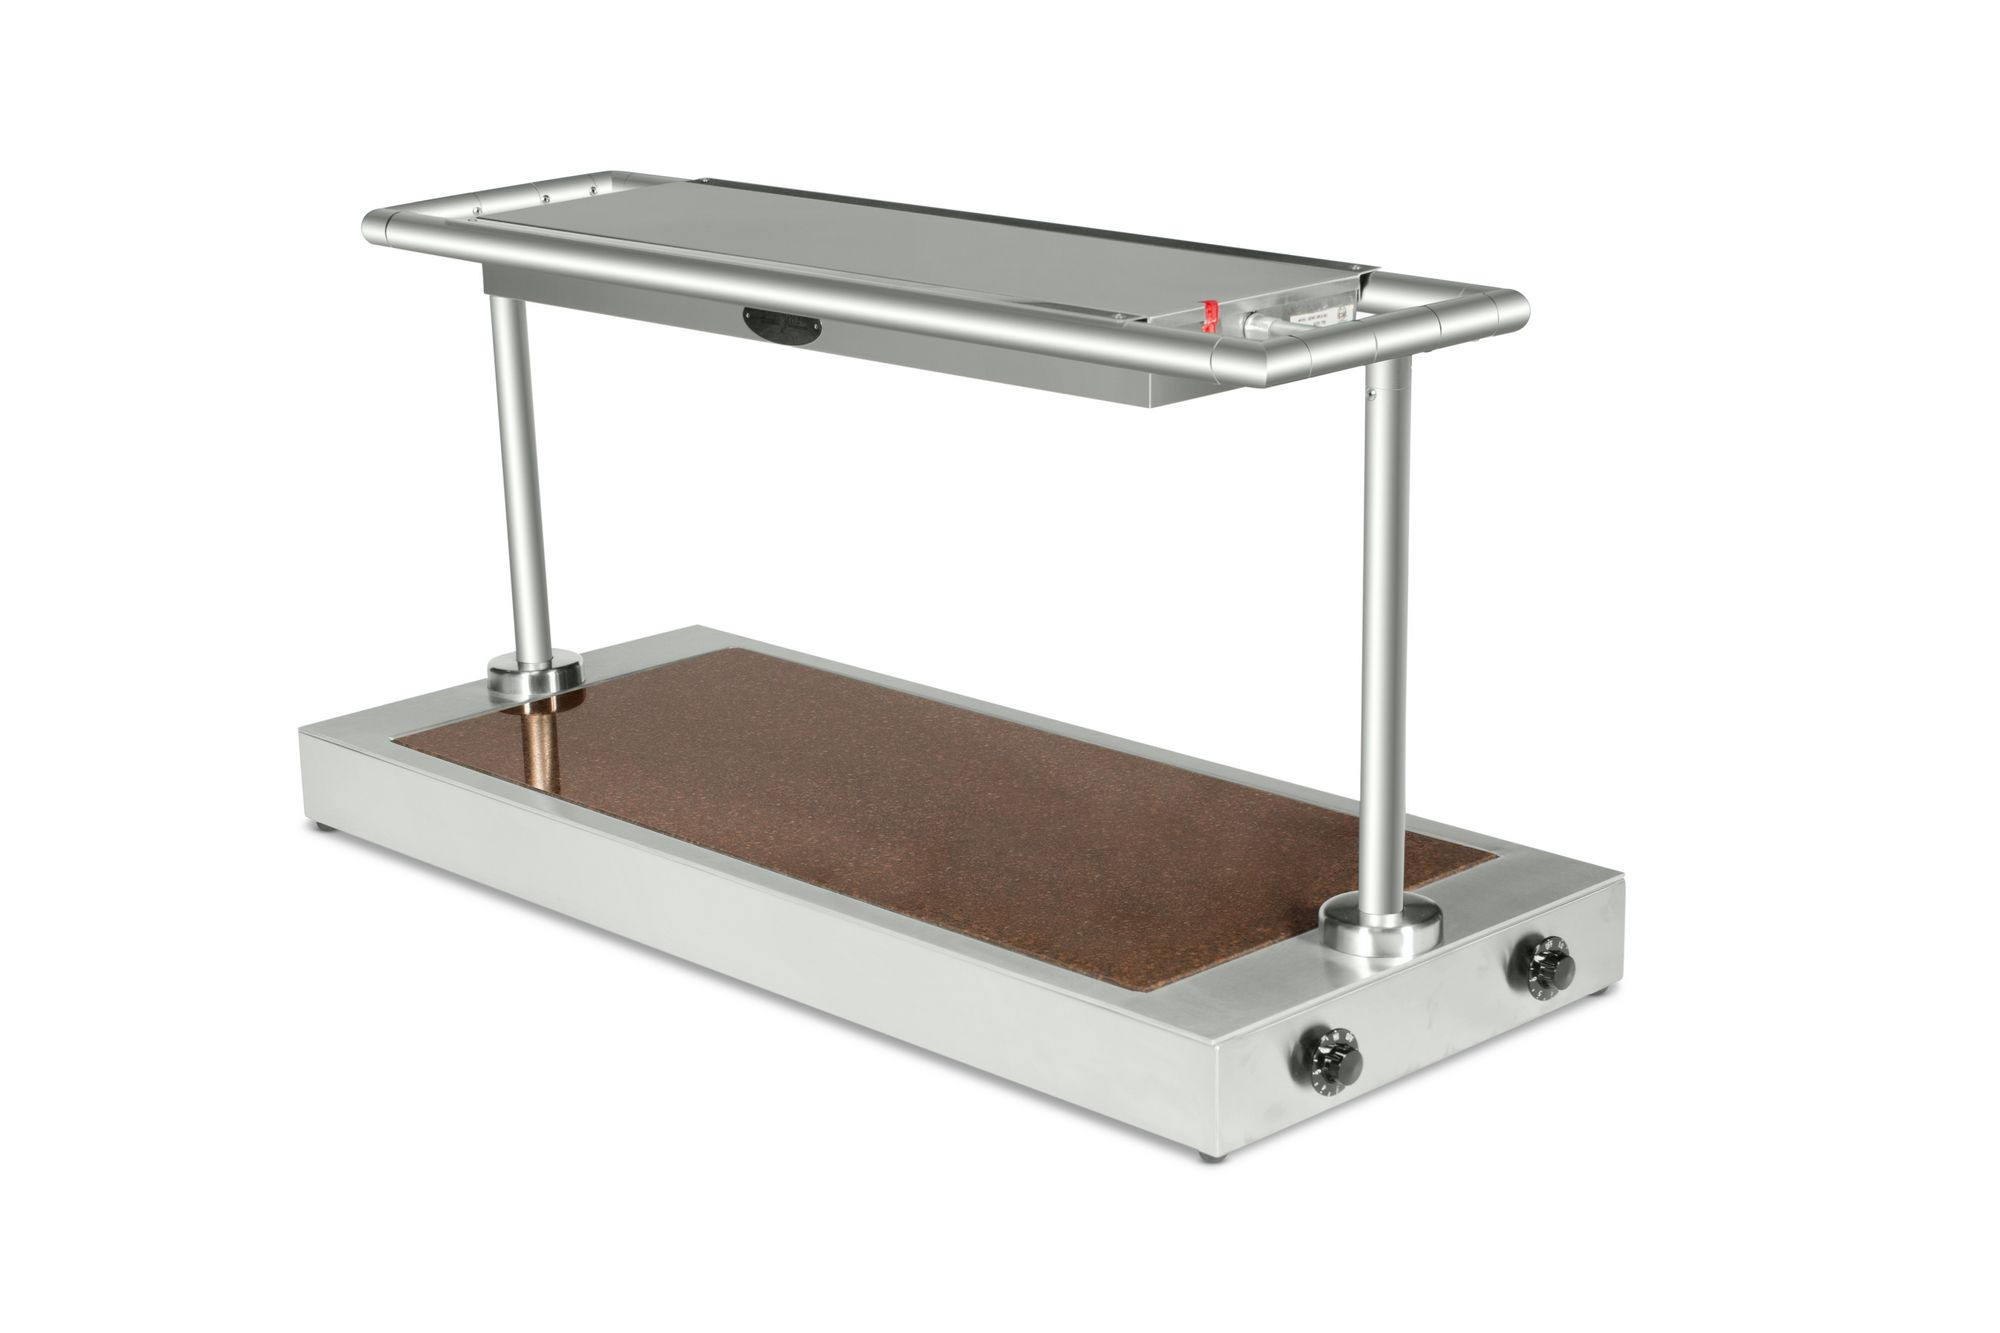 "Bon Chef 50145 Granite Top Heat Unit with Overhead Heat, 21"" x 51"" x 33 1/2"""